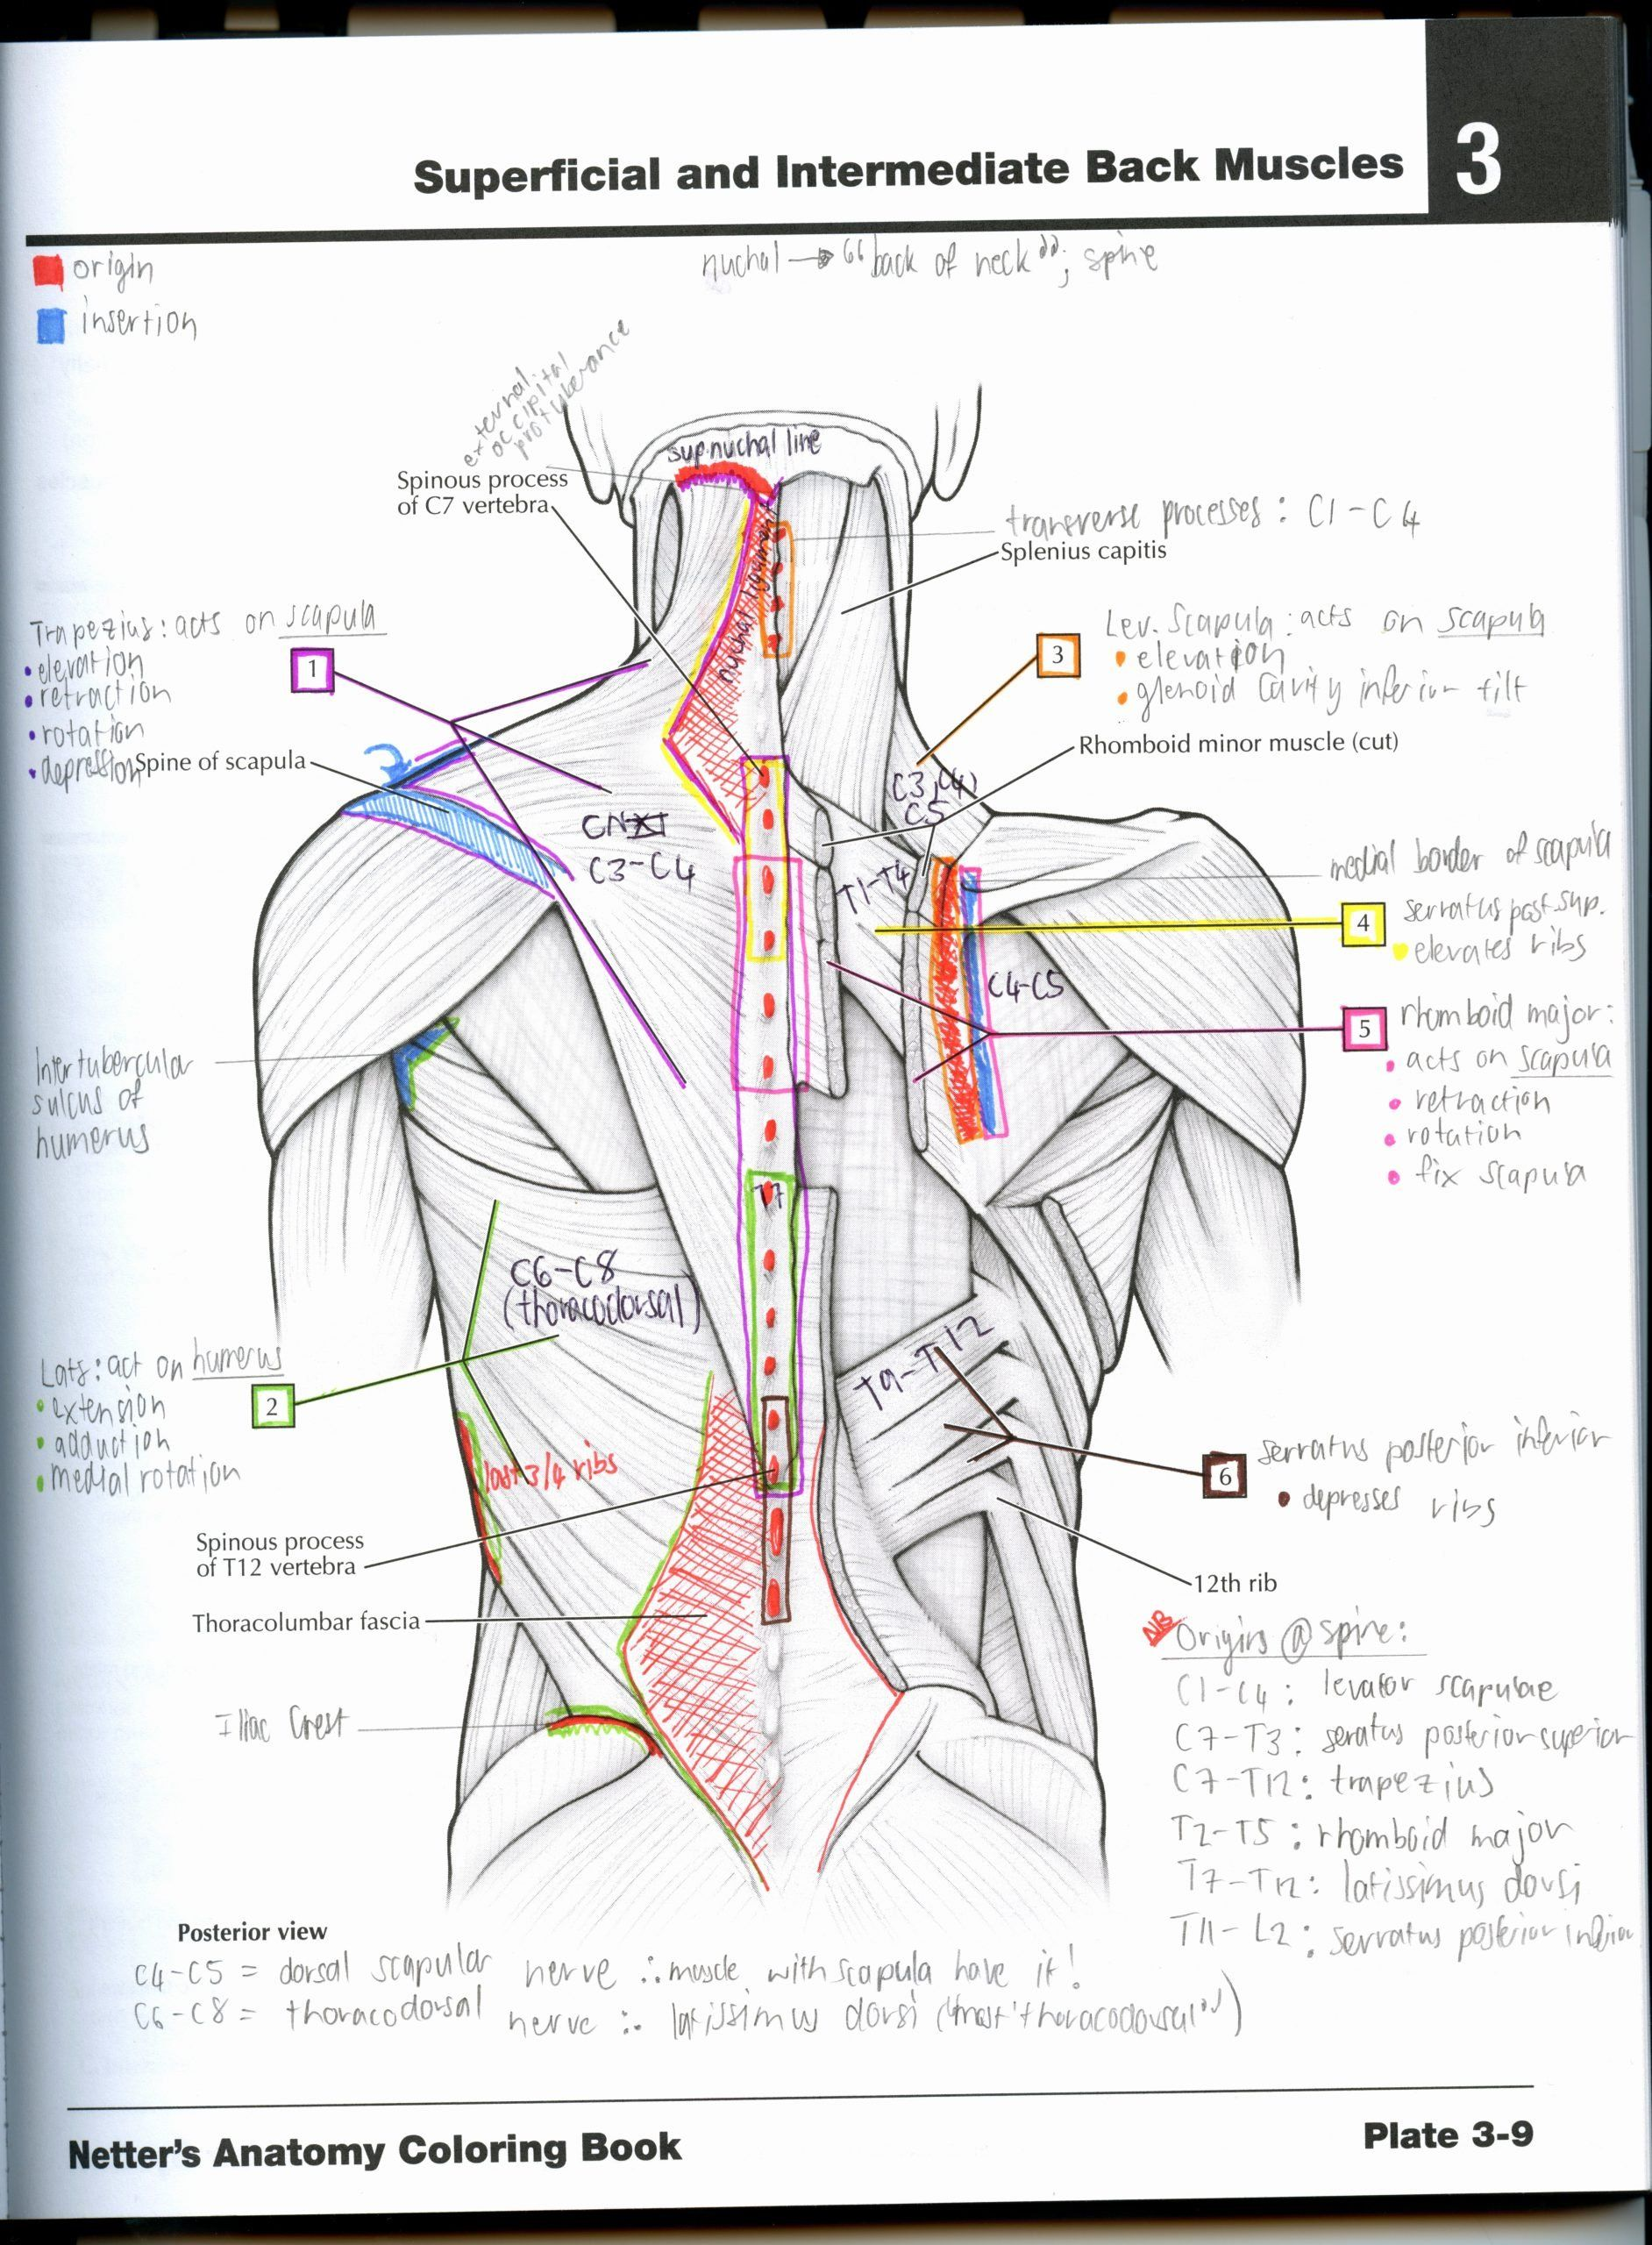 Netter's Anatomy Coloring Book Pdf : netter's, anatomy, coloring, Netter, Anatomy, Coloring, Lovely, Learn, Colouring, Barefoot, Whispers, Book,, Books,